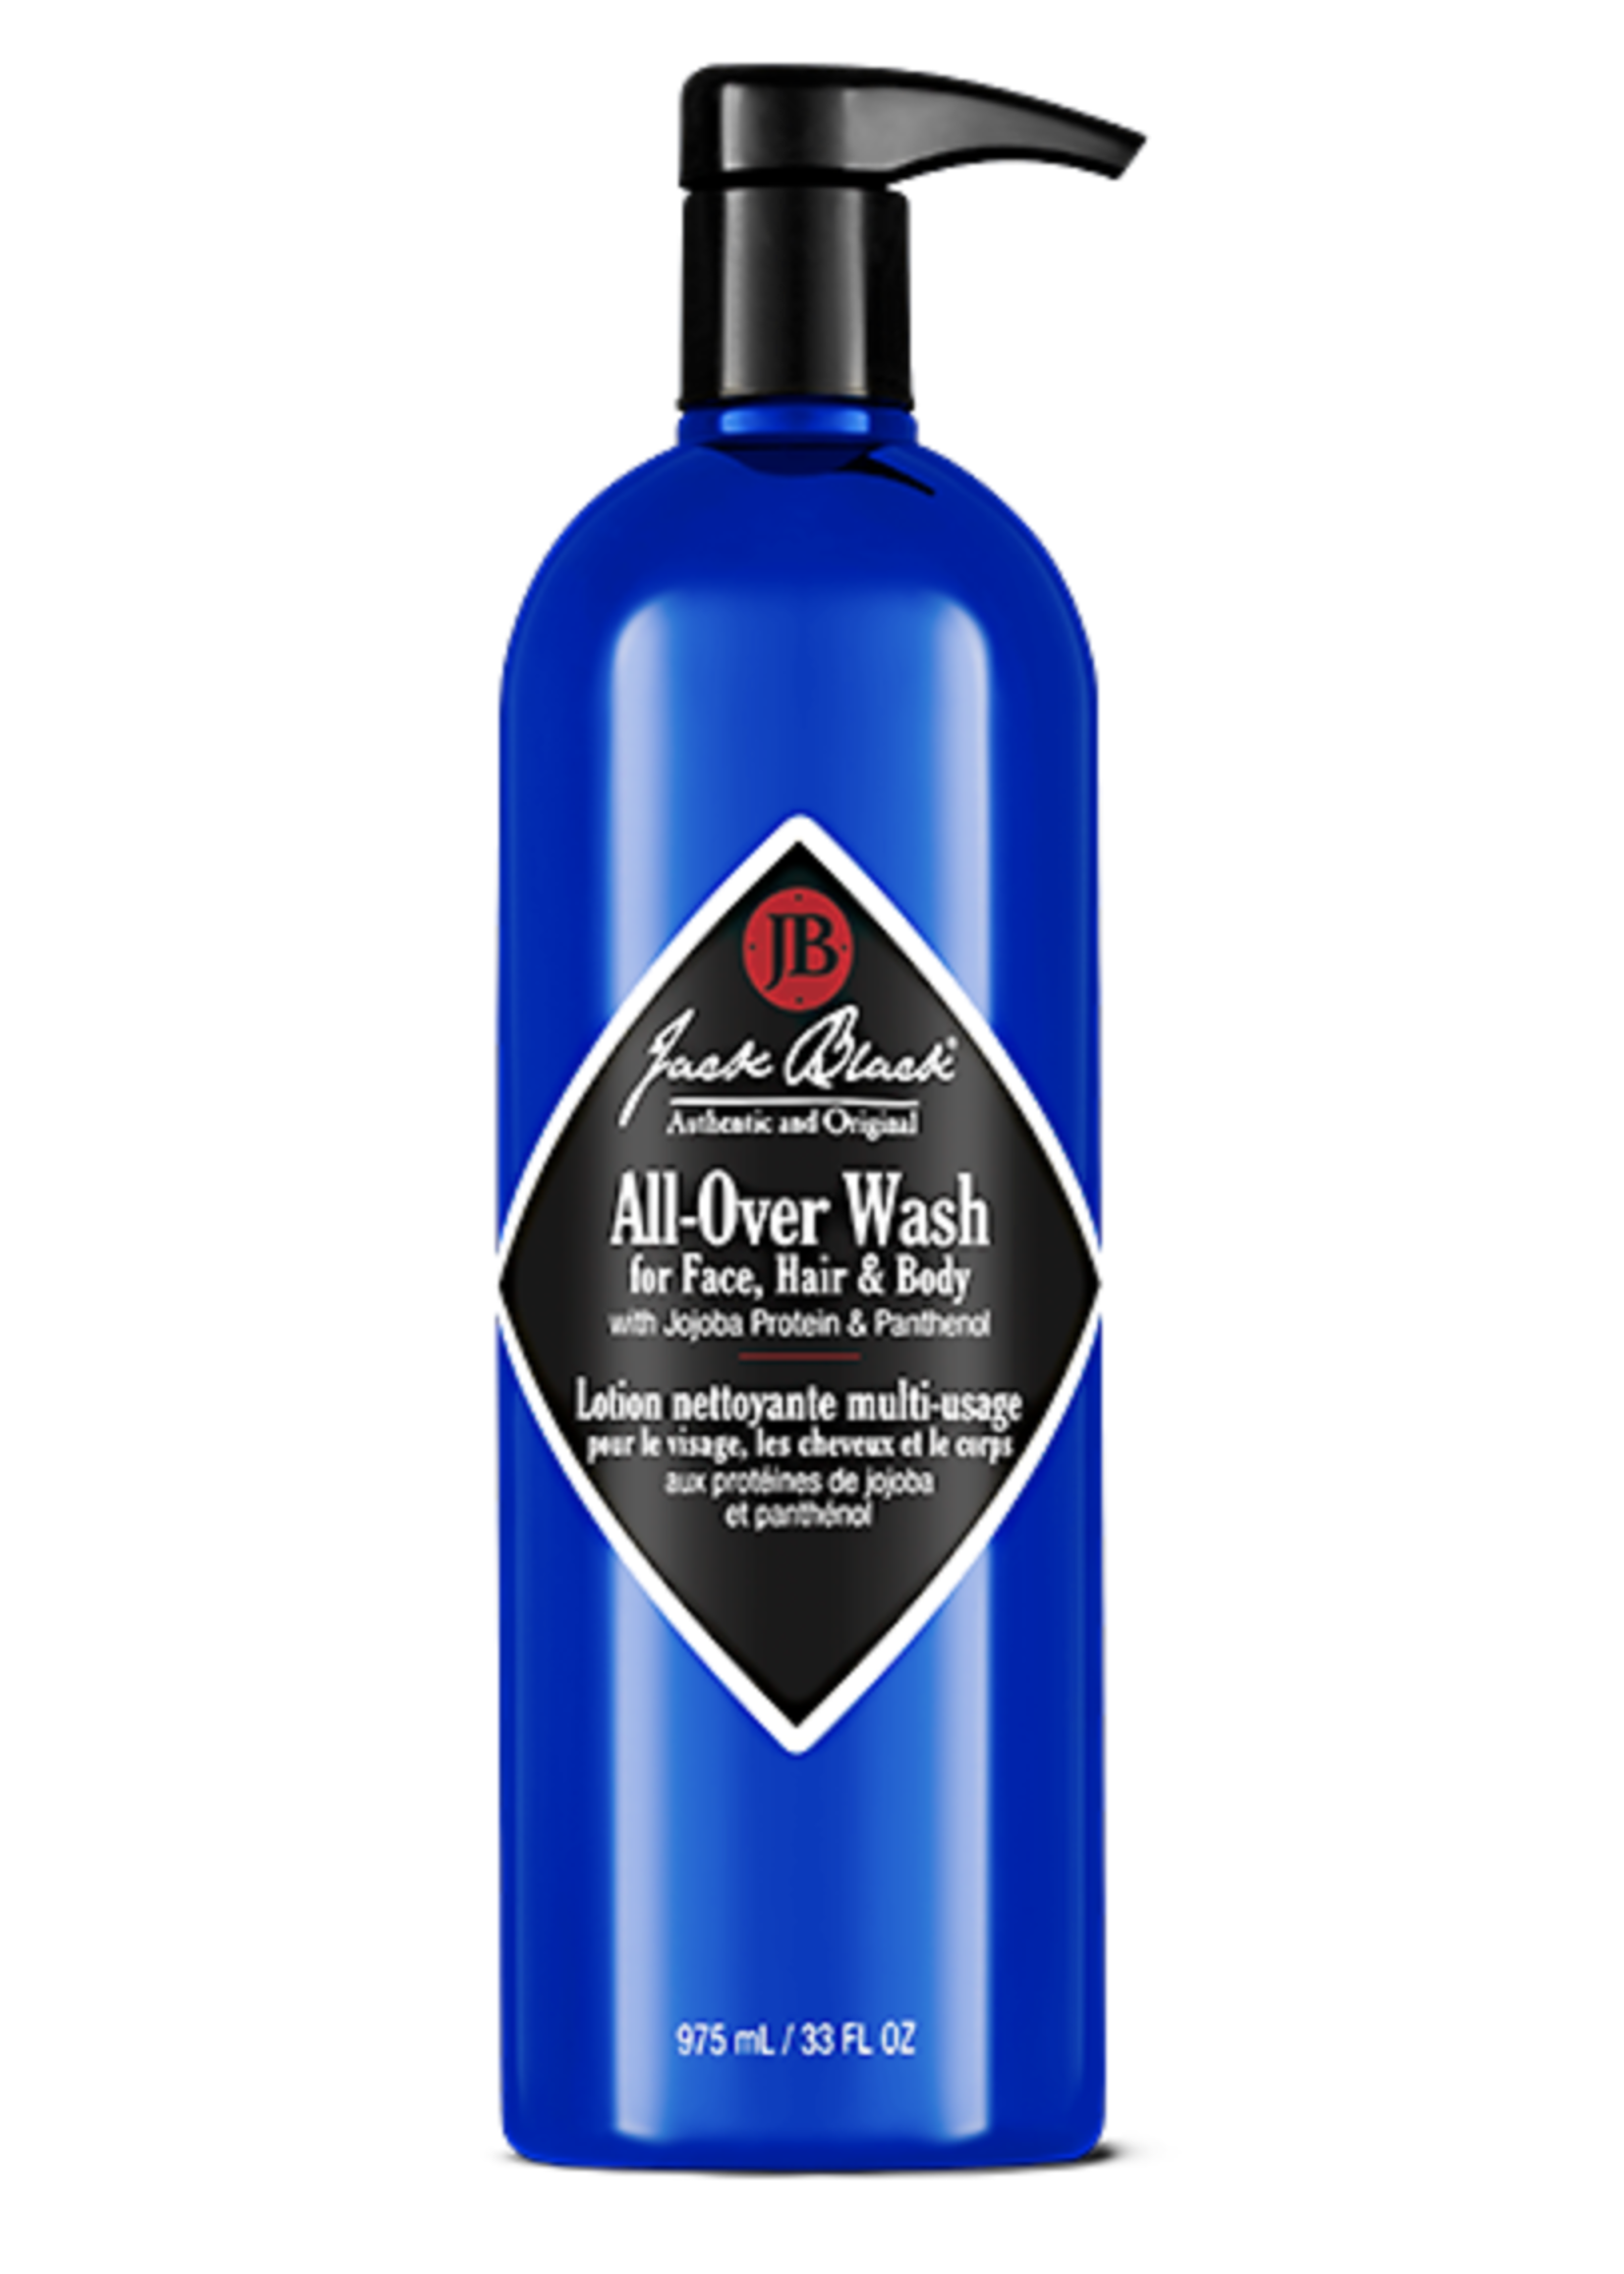 Jack Black All-Over Wash, 33 oz. w-pump